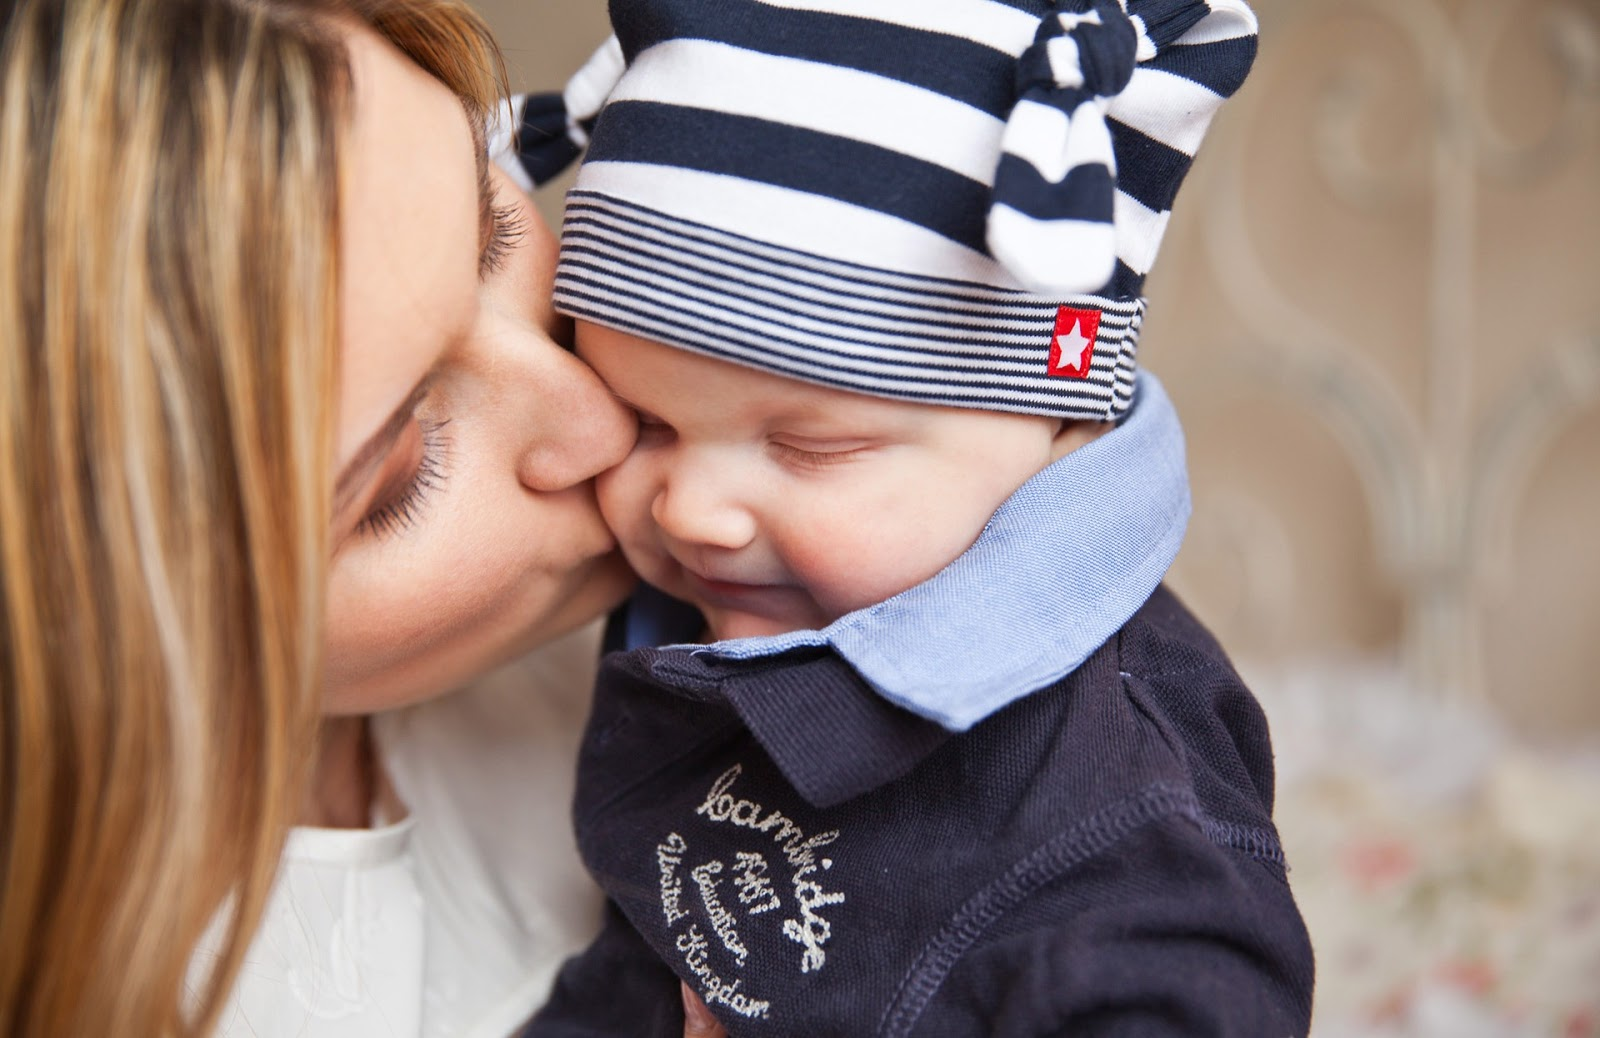 7 of the Best Christmas Gifts for New Moms